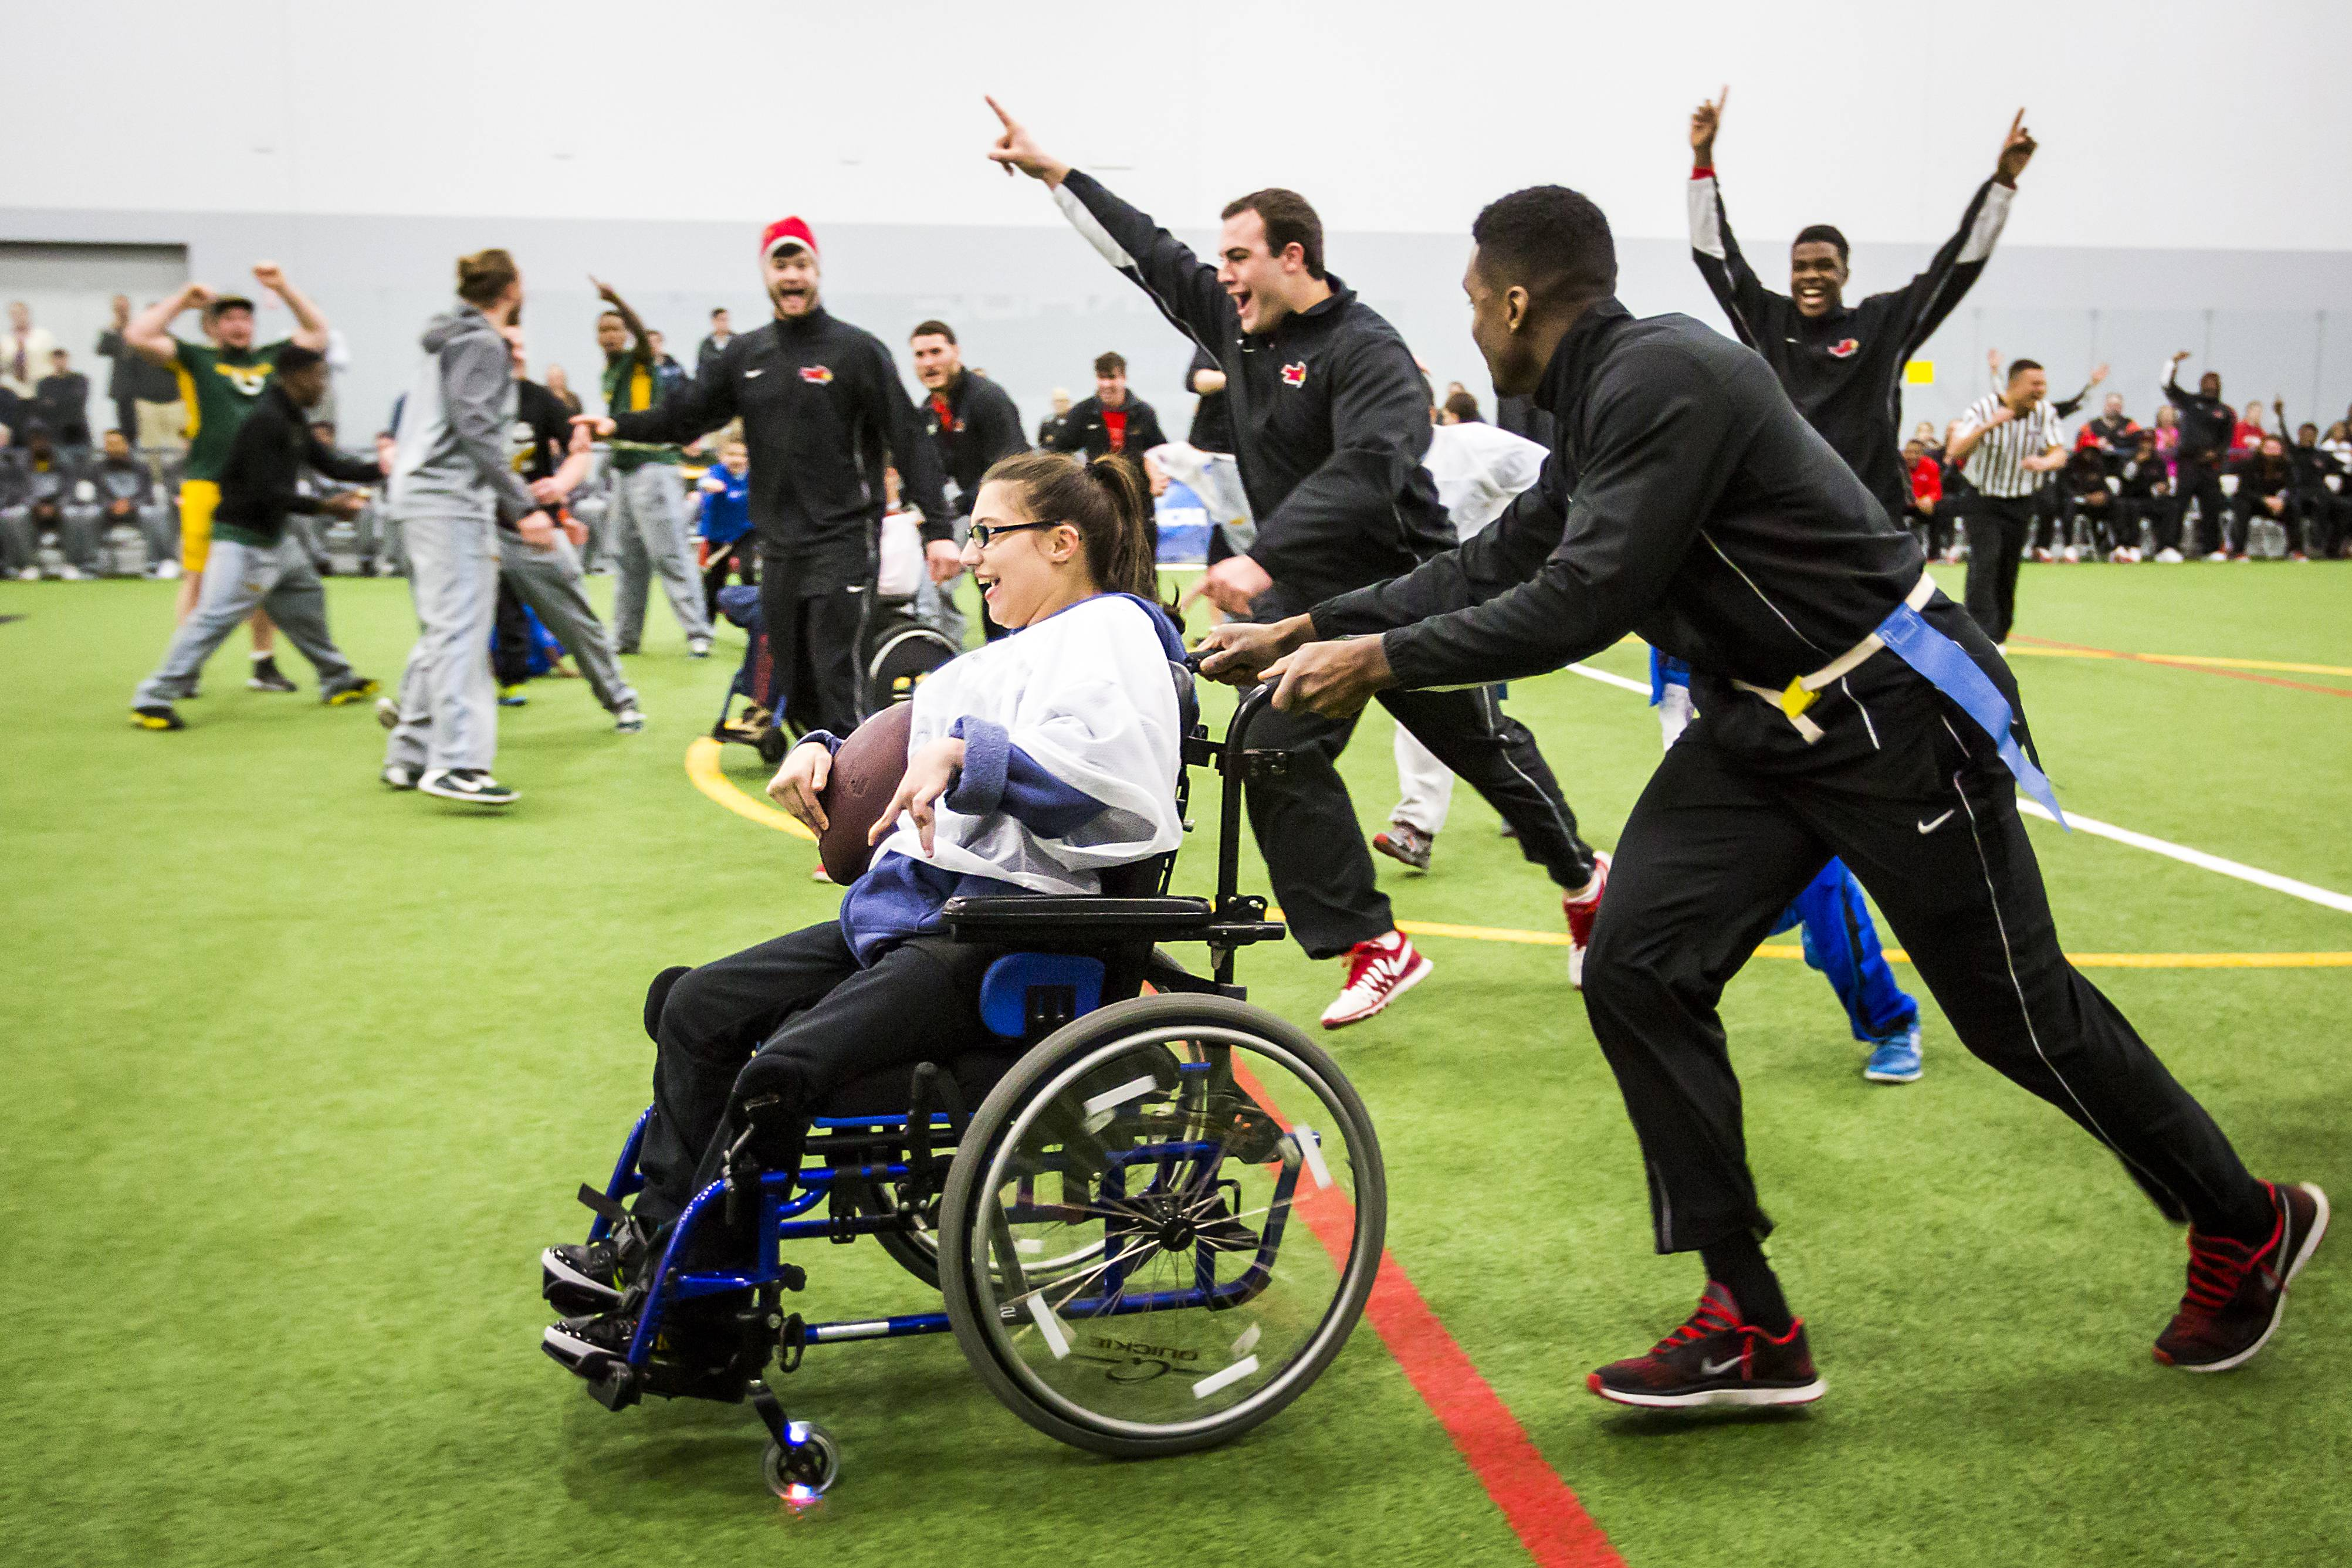 Desi Pacheco gets a push from her buddy, Illinois State running back Jeffrey Lewis, as players from both Illinois State and North Dakota State cheer her on to a touchdown during a Miracle League flag football game Thursday, Jan. 8, 2015, in Frisco, Texas. The game for special needs children is this year's service project for teams participating in the NCAA Football Championship Subdivision title game. (AP Photo/The Dallas Morning News, Smiley N. Pool)